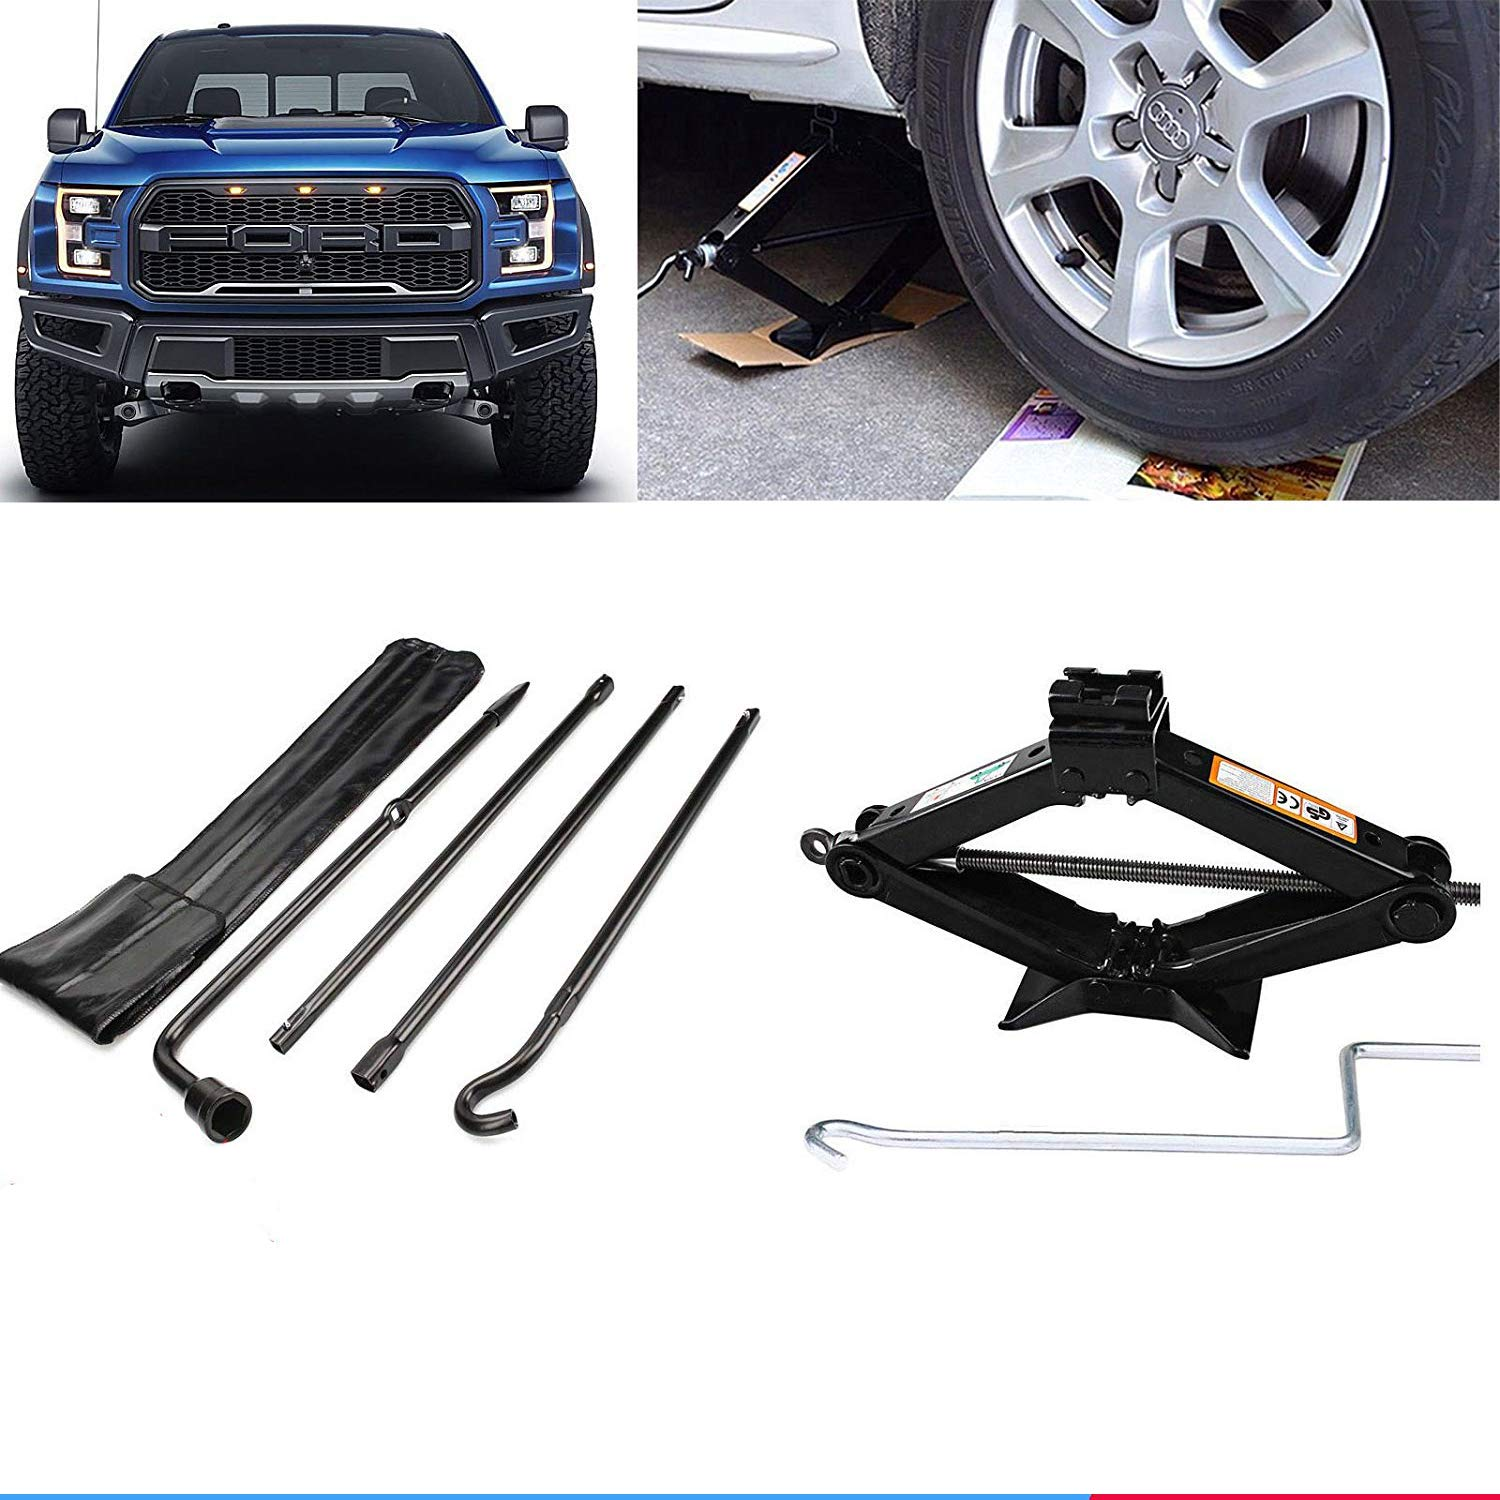 Autobaba for 2004-2014 Ford F-150 Spare Tire Tool Kit and 2 Ton Scissor Jack, 2 Year Warranty, US Stock by Autobaba